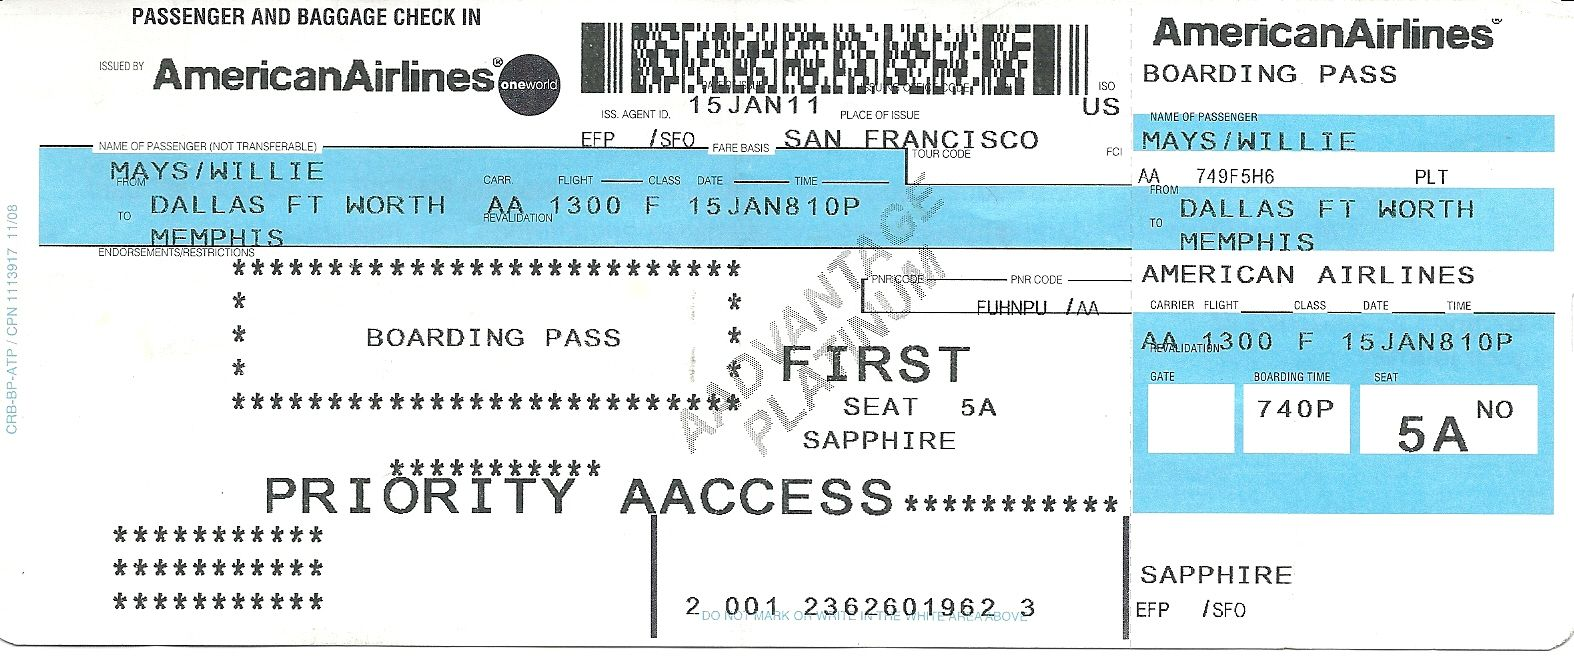 Mays boarding passes for flights from sf to dallas and dallas to